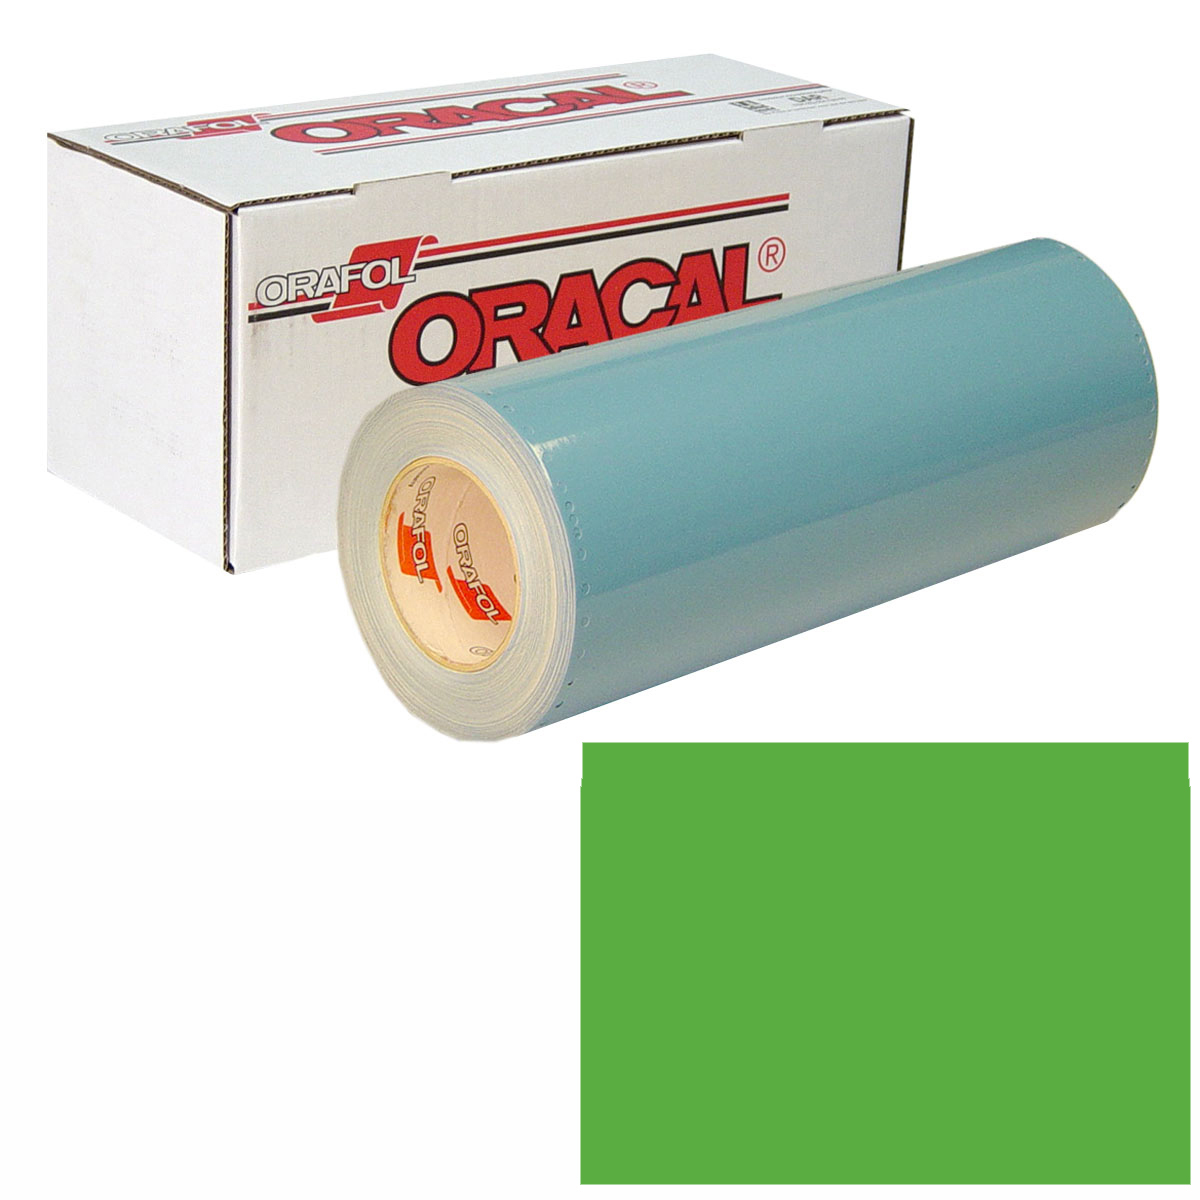 ORACAL 751 15In X 50Yd 063 Lime-Tree Green